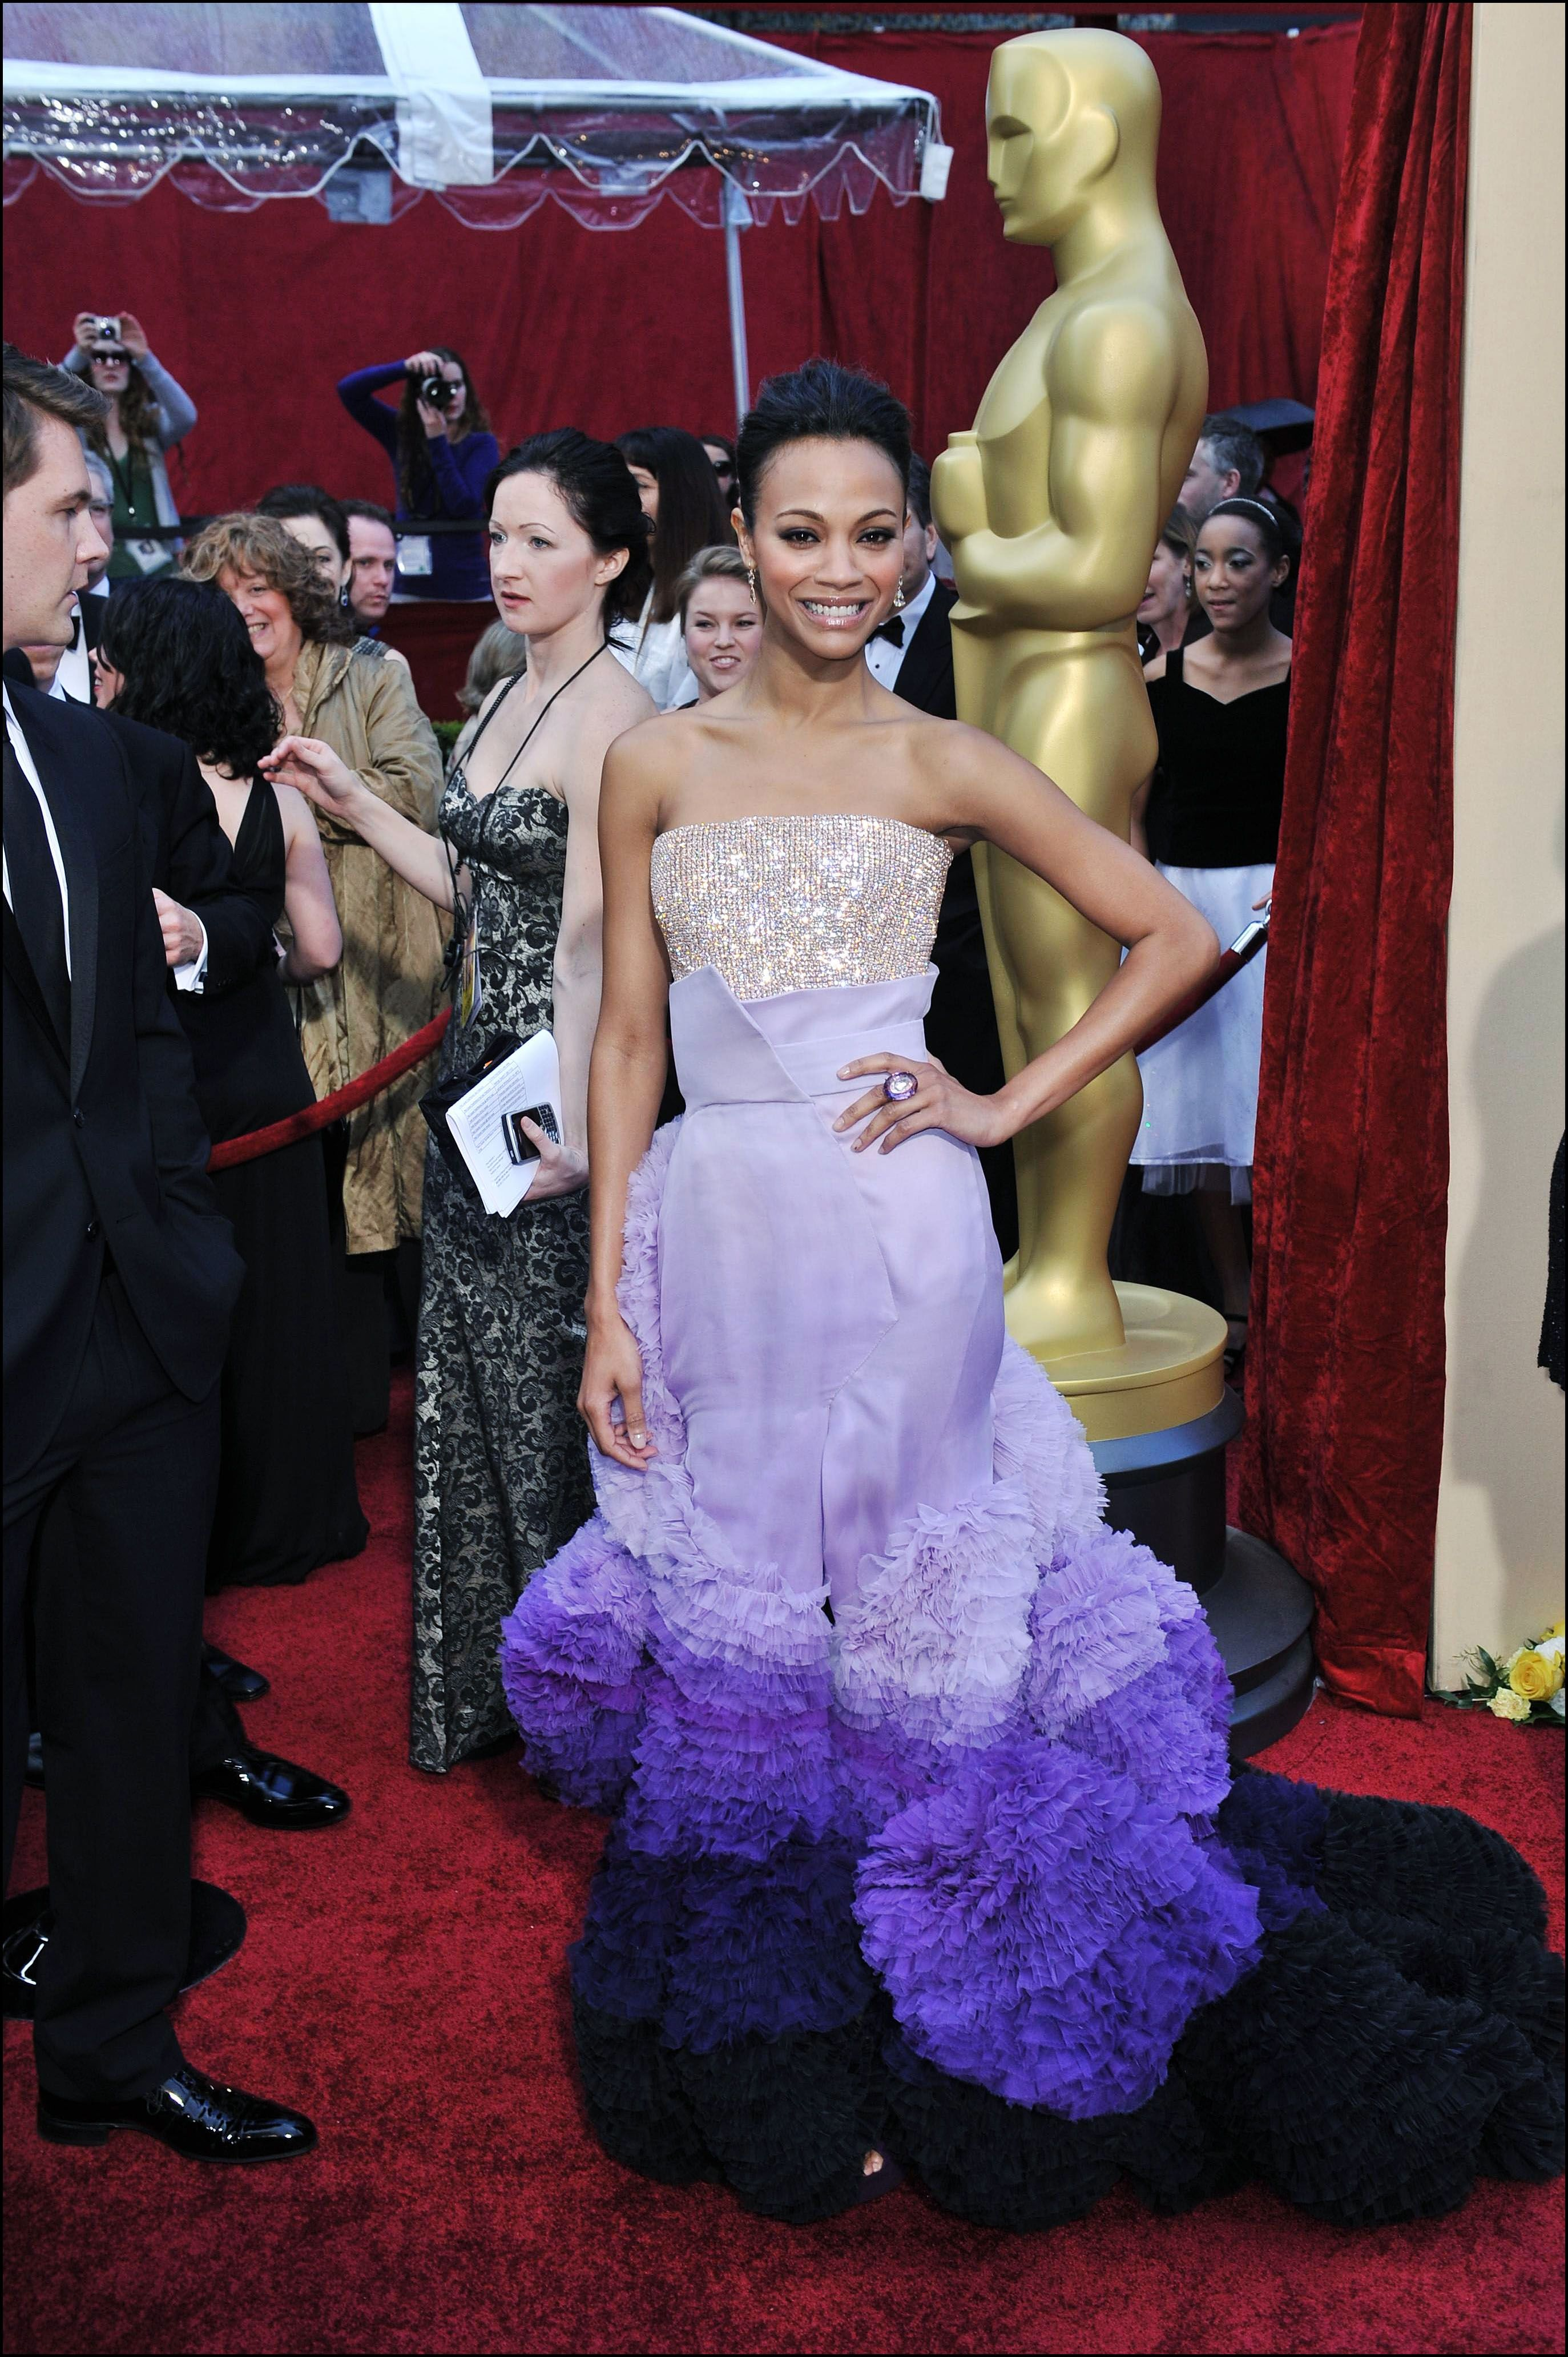 Zoe Saldana arrives at the 82nd Annual Academy Awards at the Kodak Theatre on March 7, 2010 in Hollywood, California. | Source: Getty Images